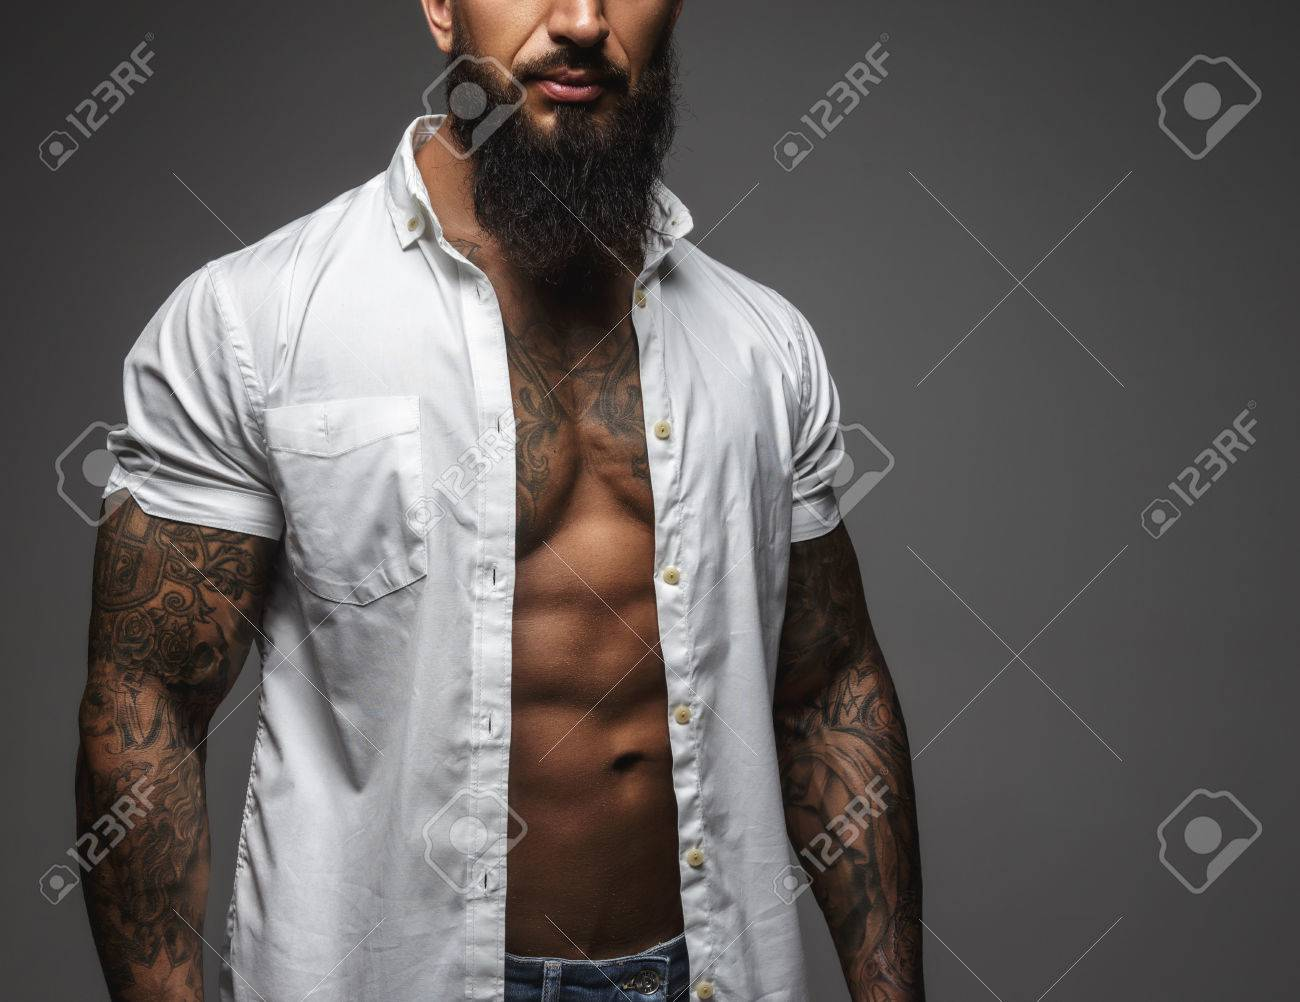 Bearded muscular man in a white shirt isolated on a grey background. - 54362428